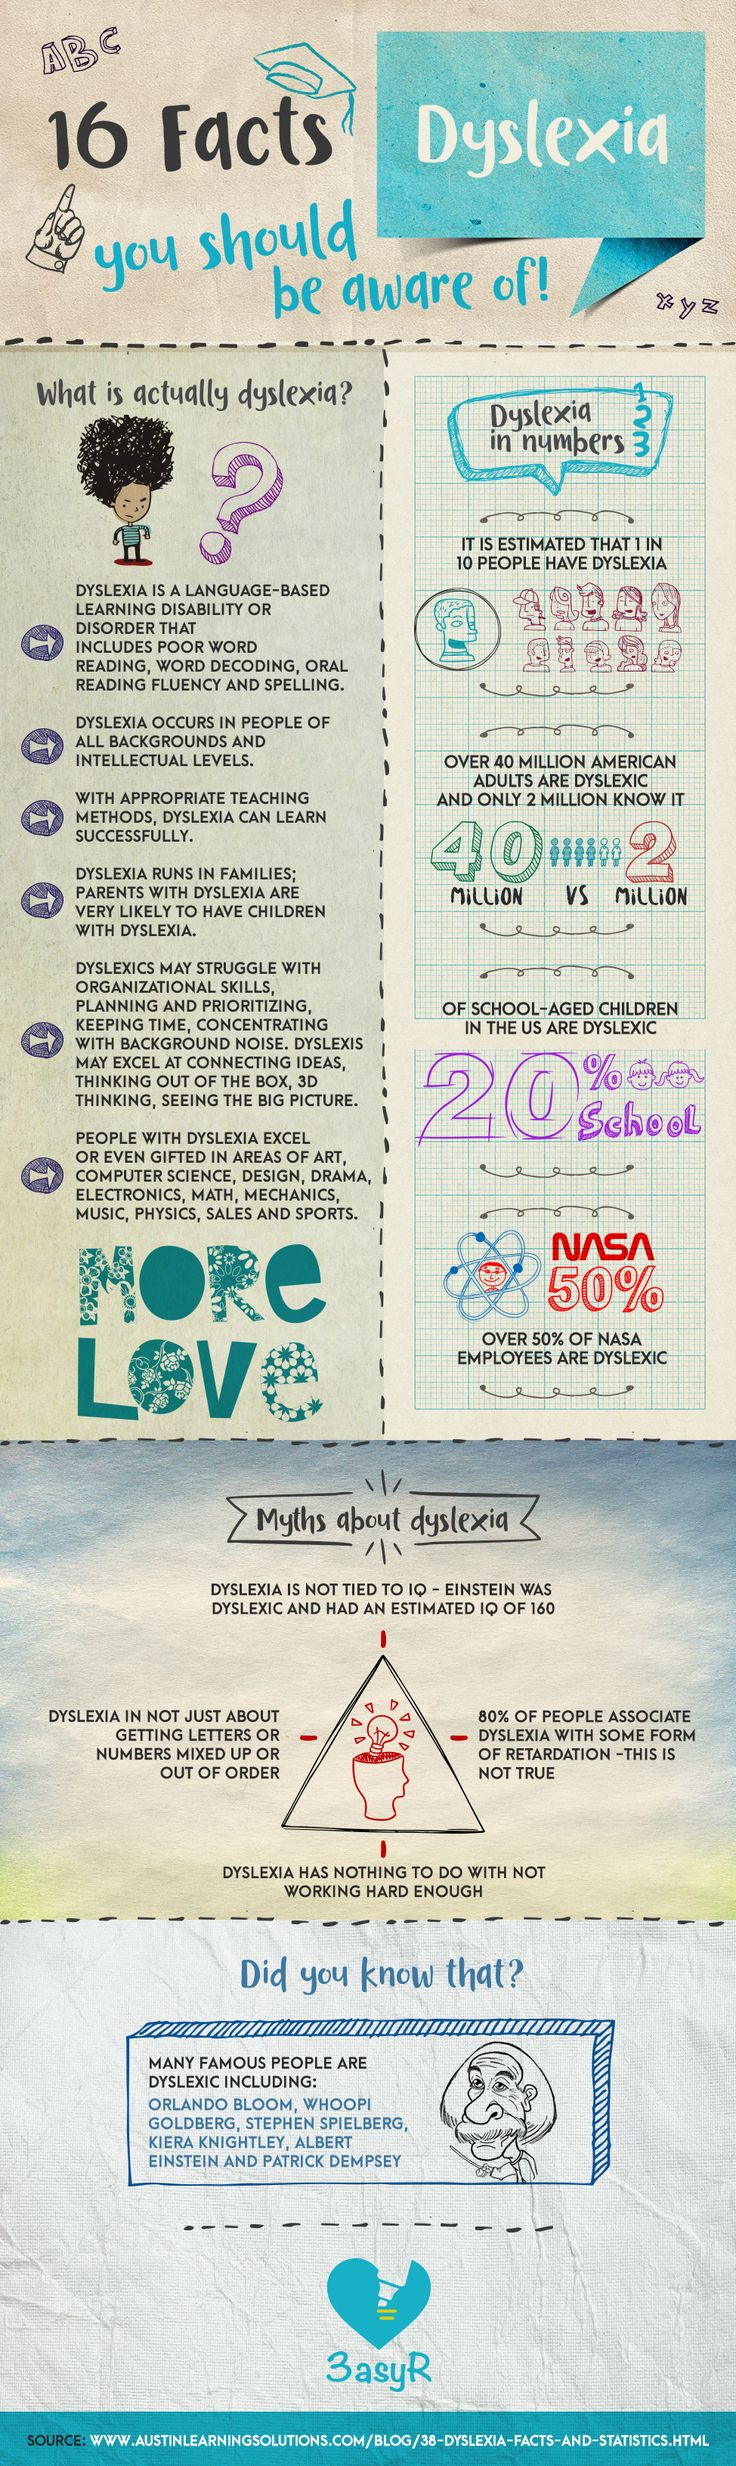 Dyslexia! 16 #facts you should be aware of!